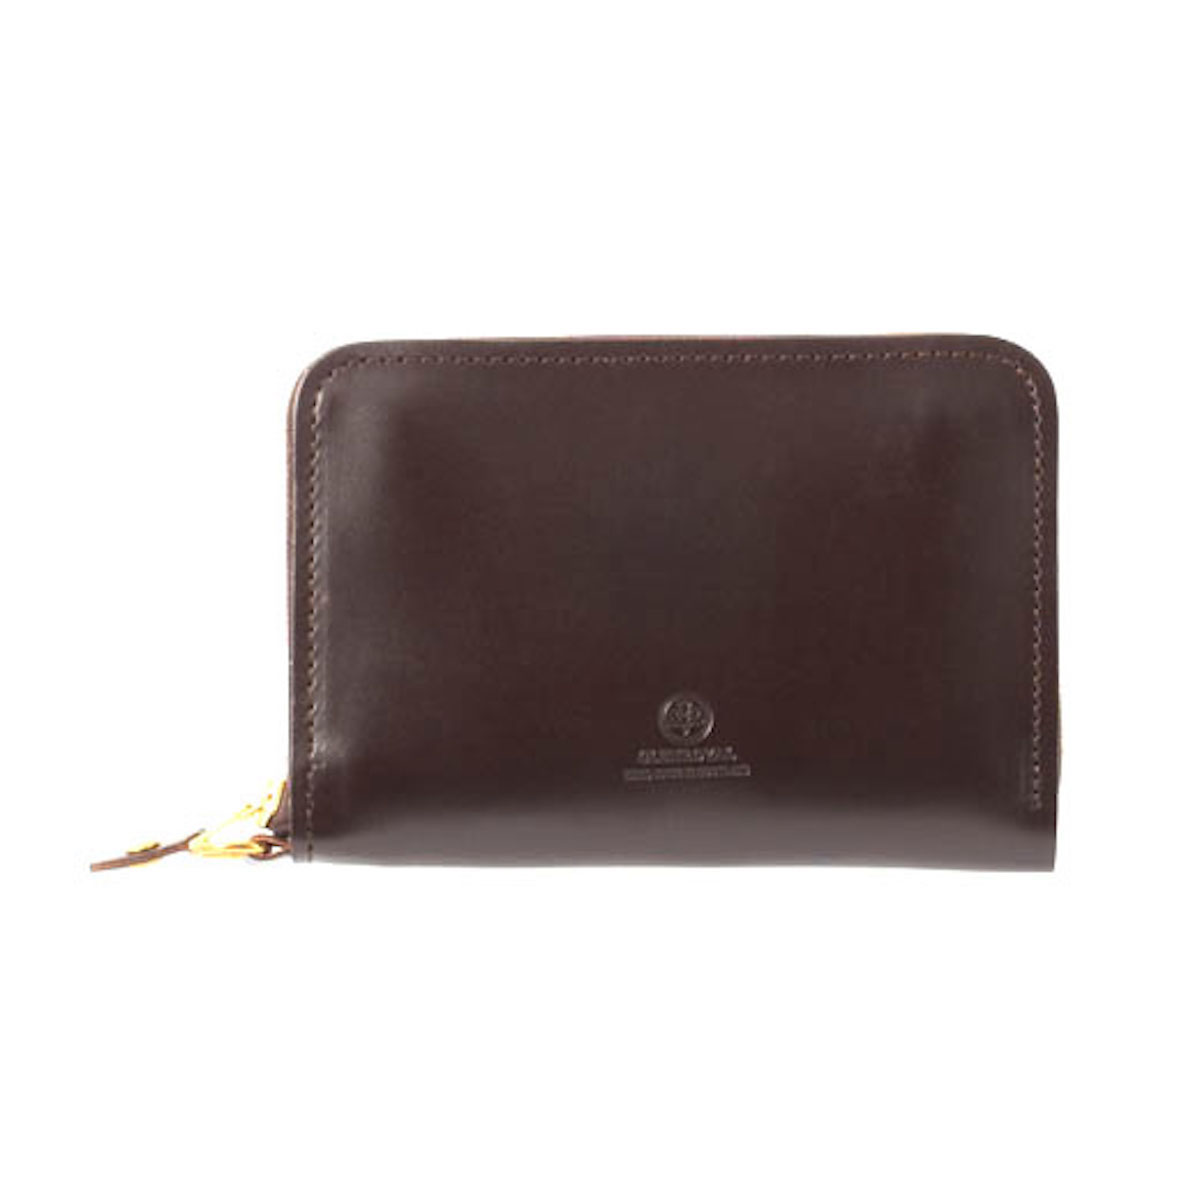 GLEN ROYAL / WALLET WITH DIVIDERS -CIGAR